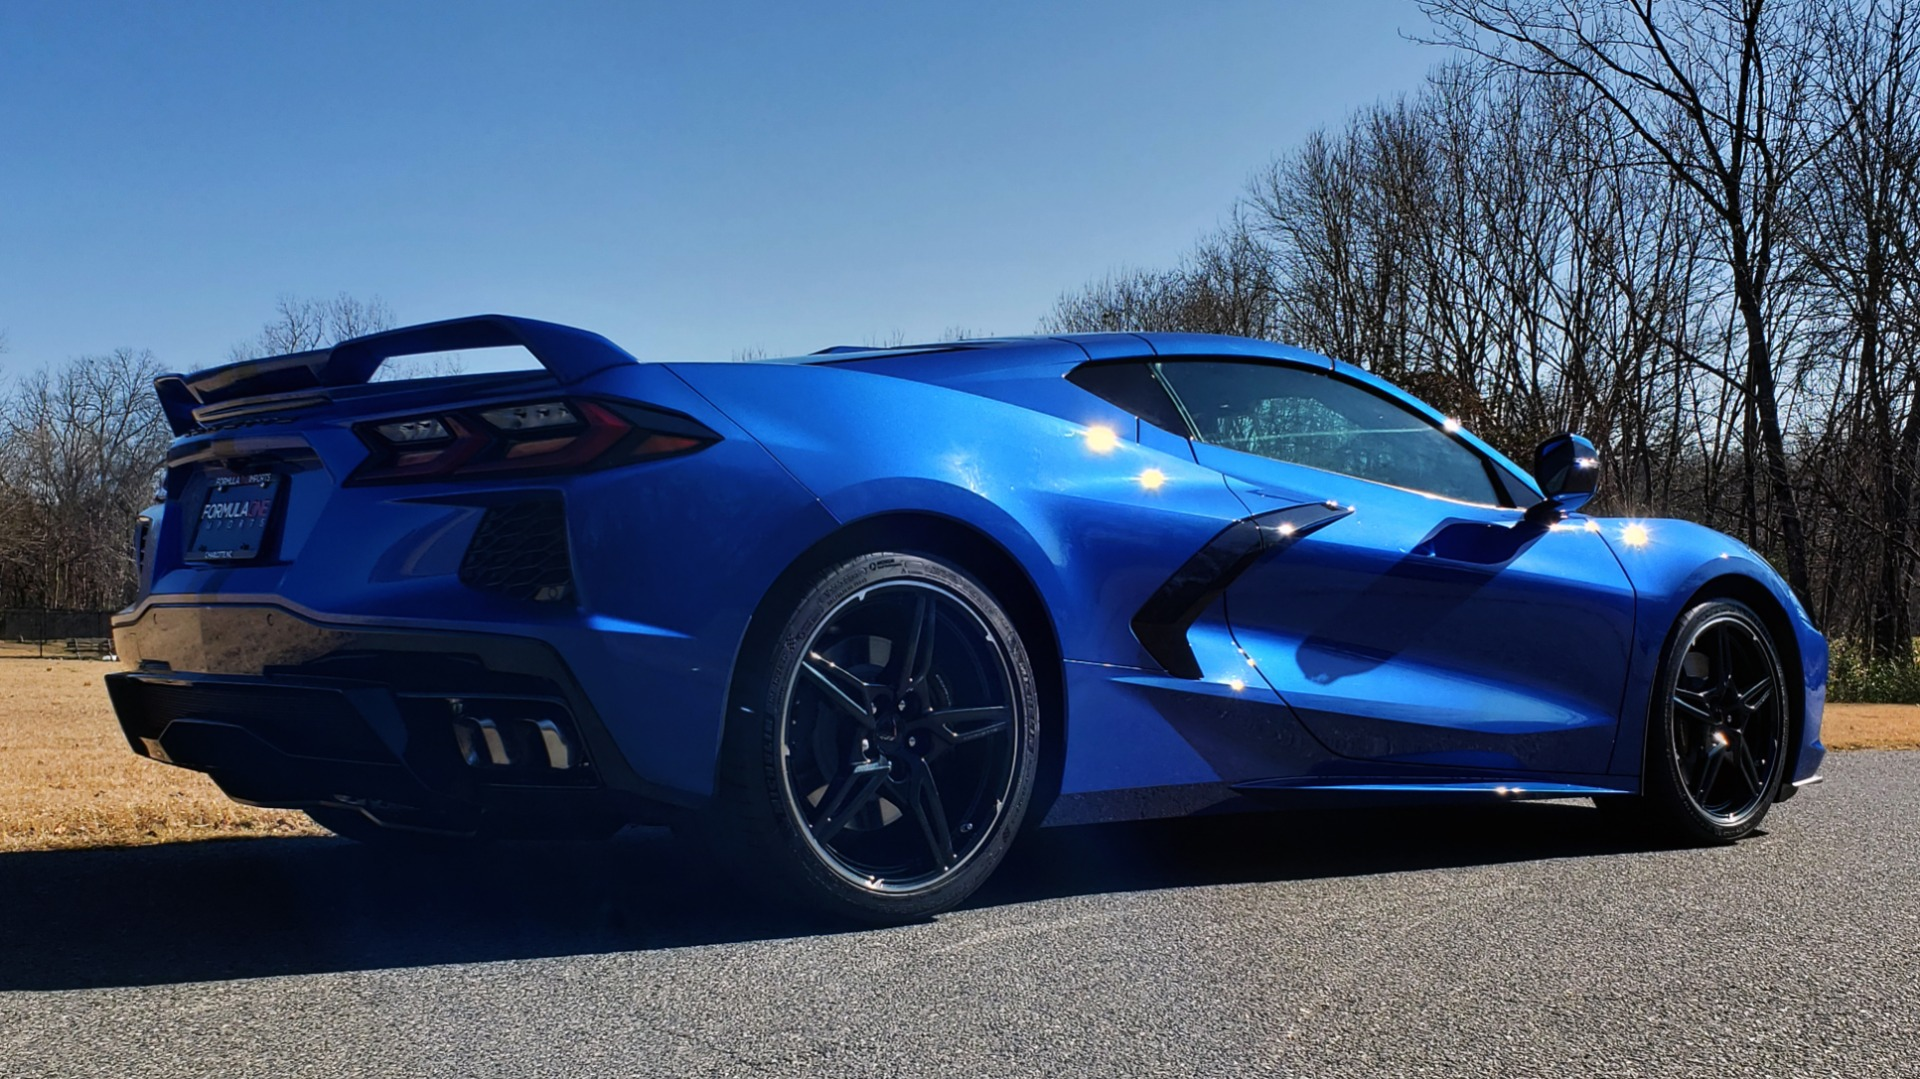 Used 2020 Chevrolet C8 CORVETTE STINGRAY 2LT COUPE / NAV / HUD / BOSE / GT2 SEATS / FRONT LIFT / REARVIEW for sale Sold at Formula Imports in Charlotte NC 28227 11